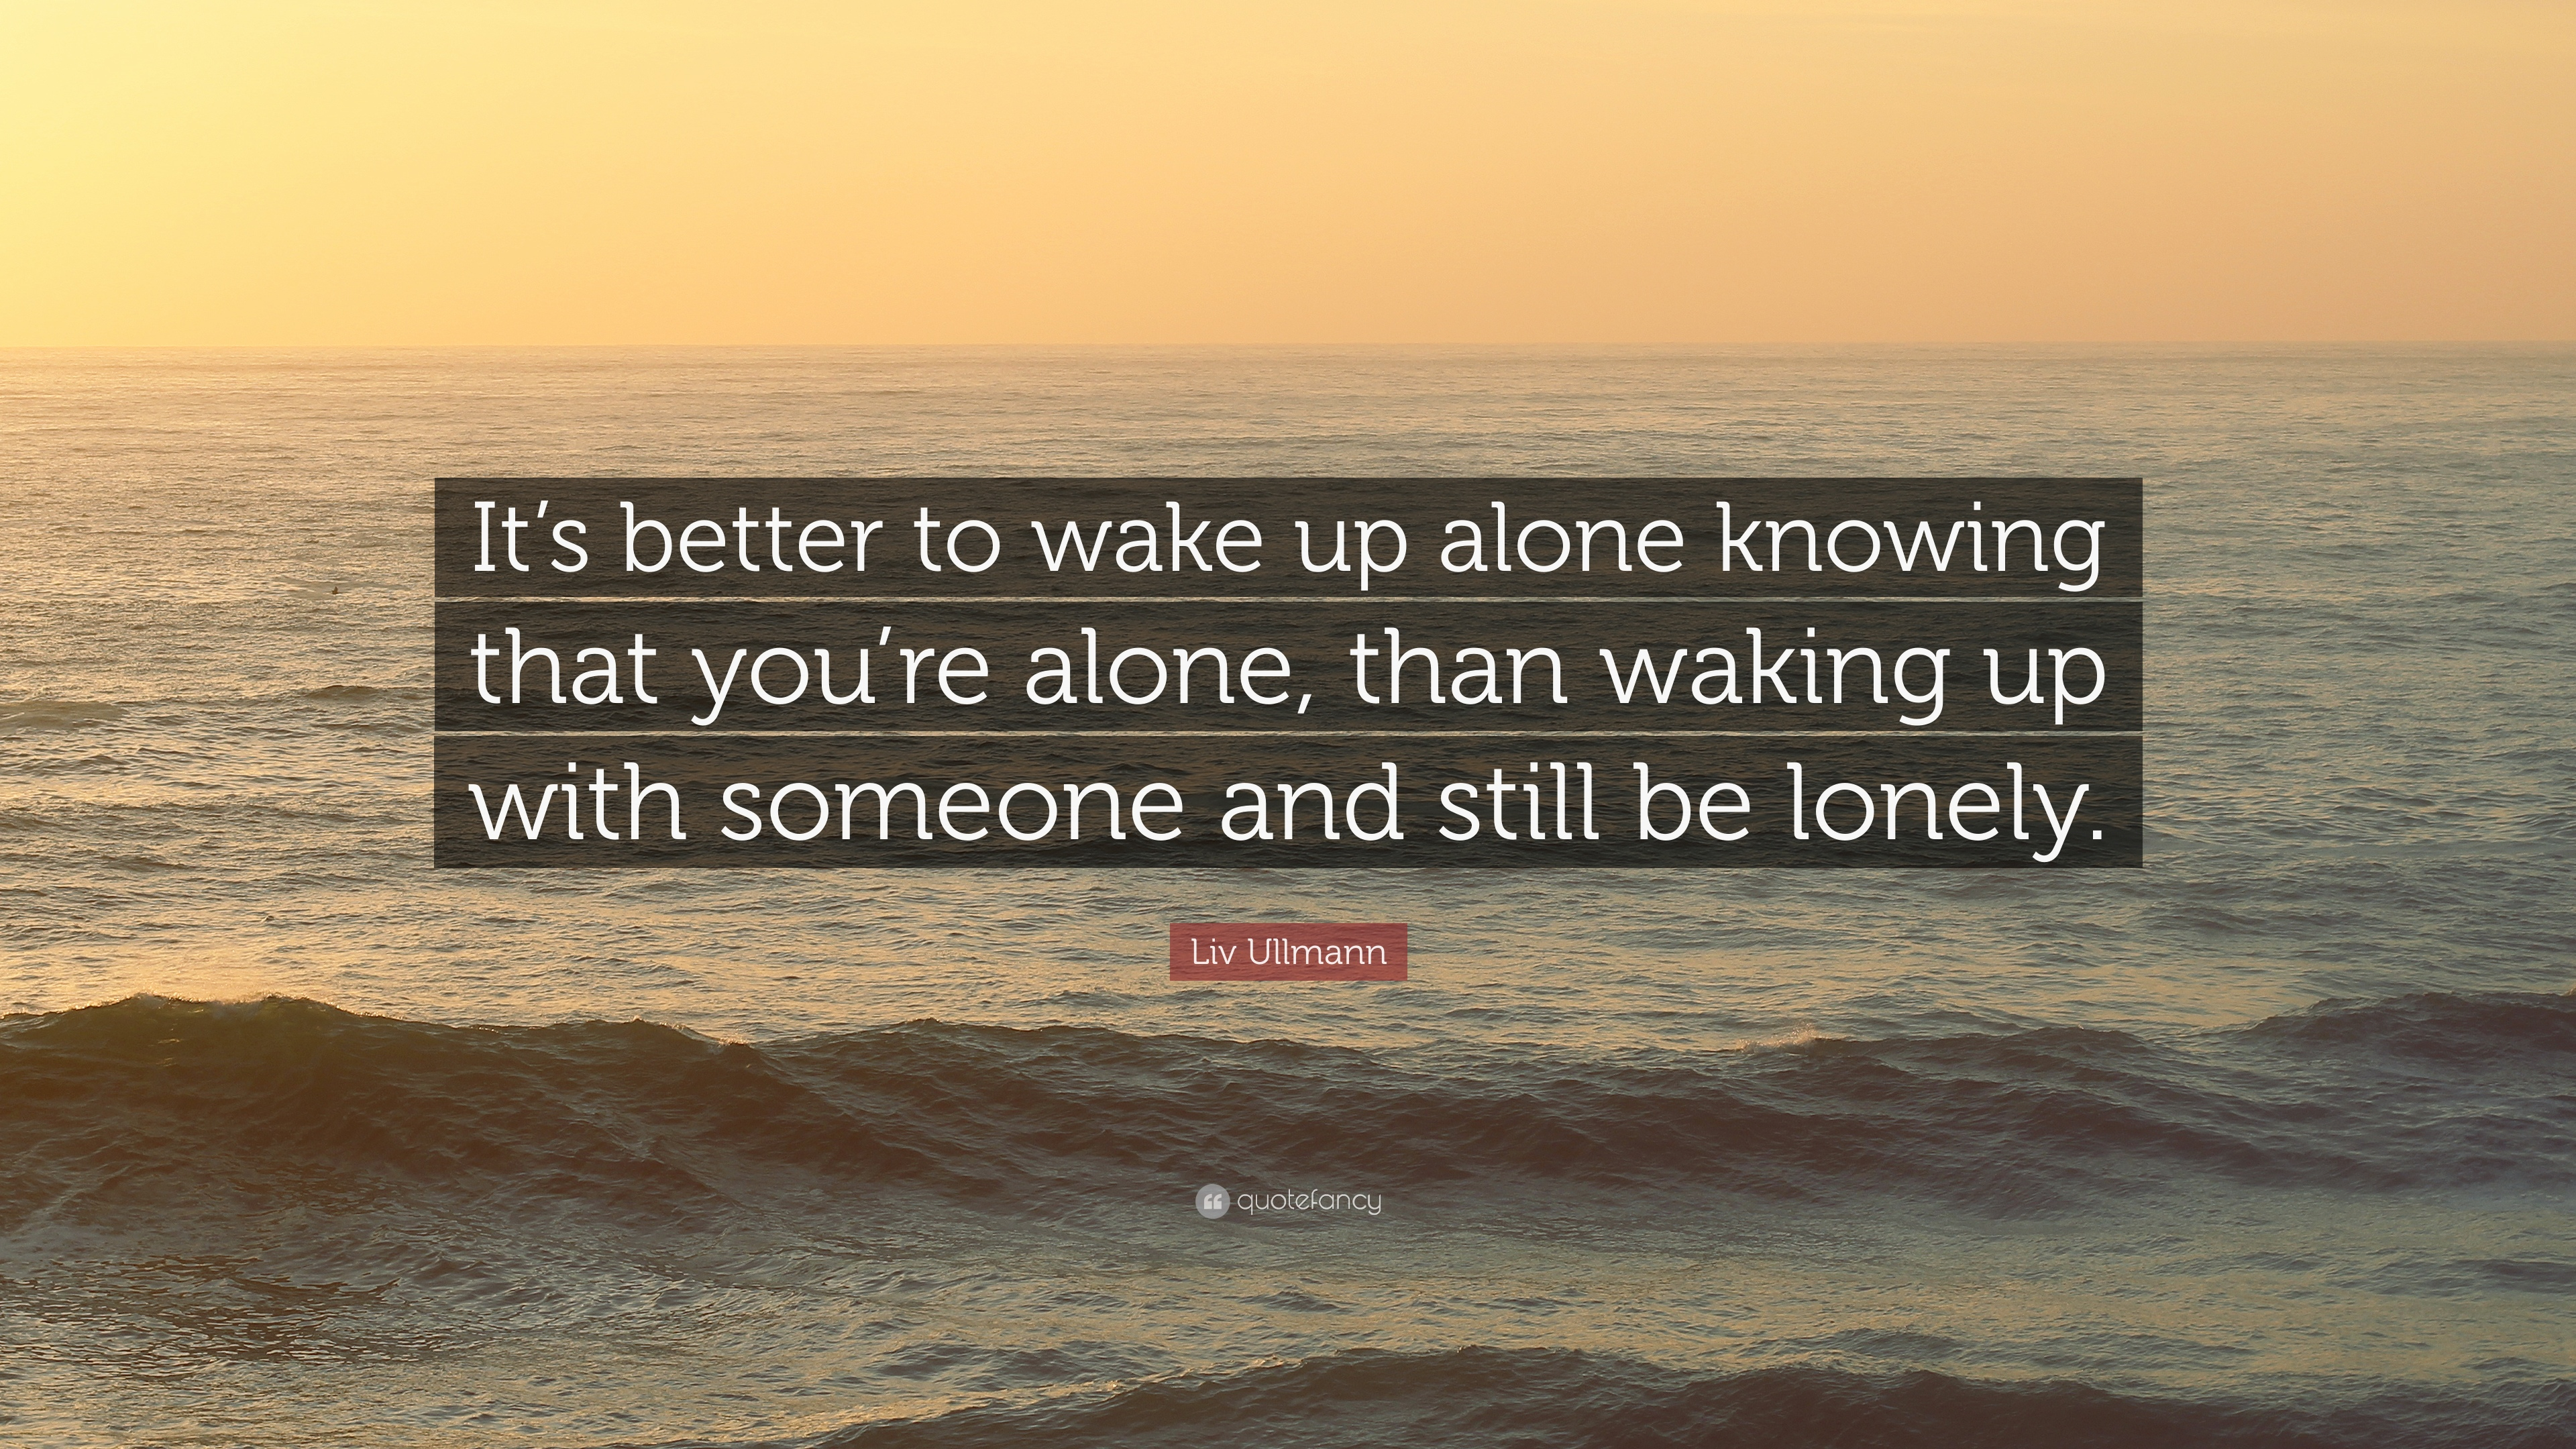 Liv Ullmann Quote: Its better to wake up alone knowing